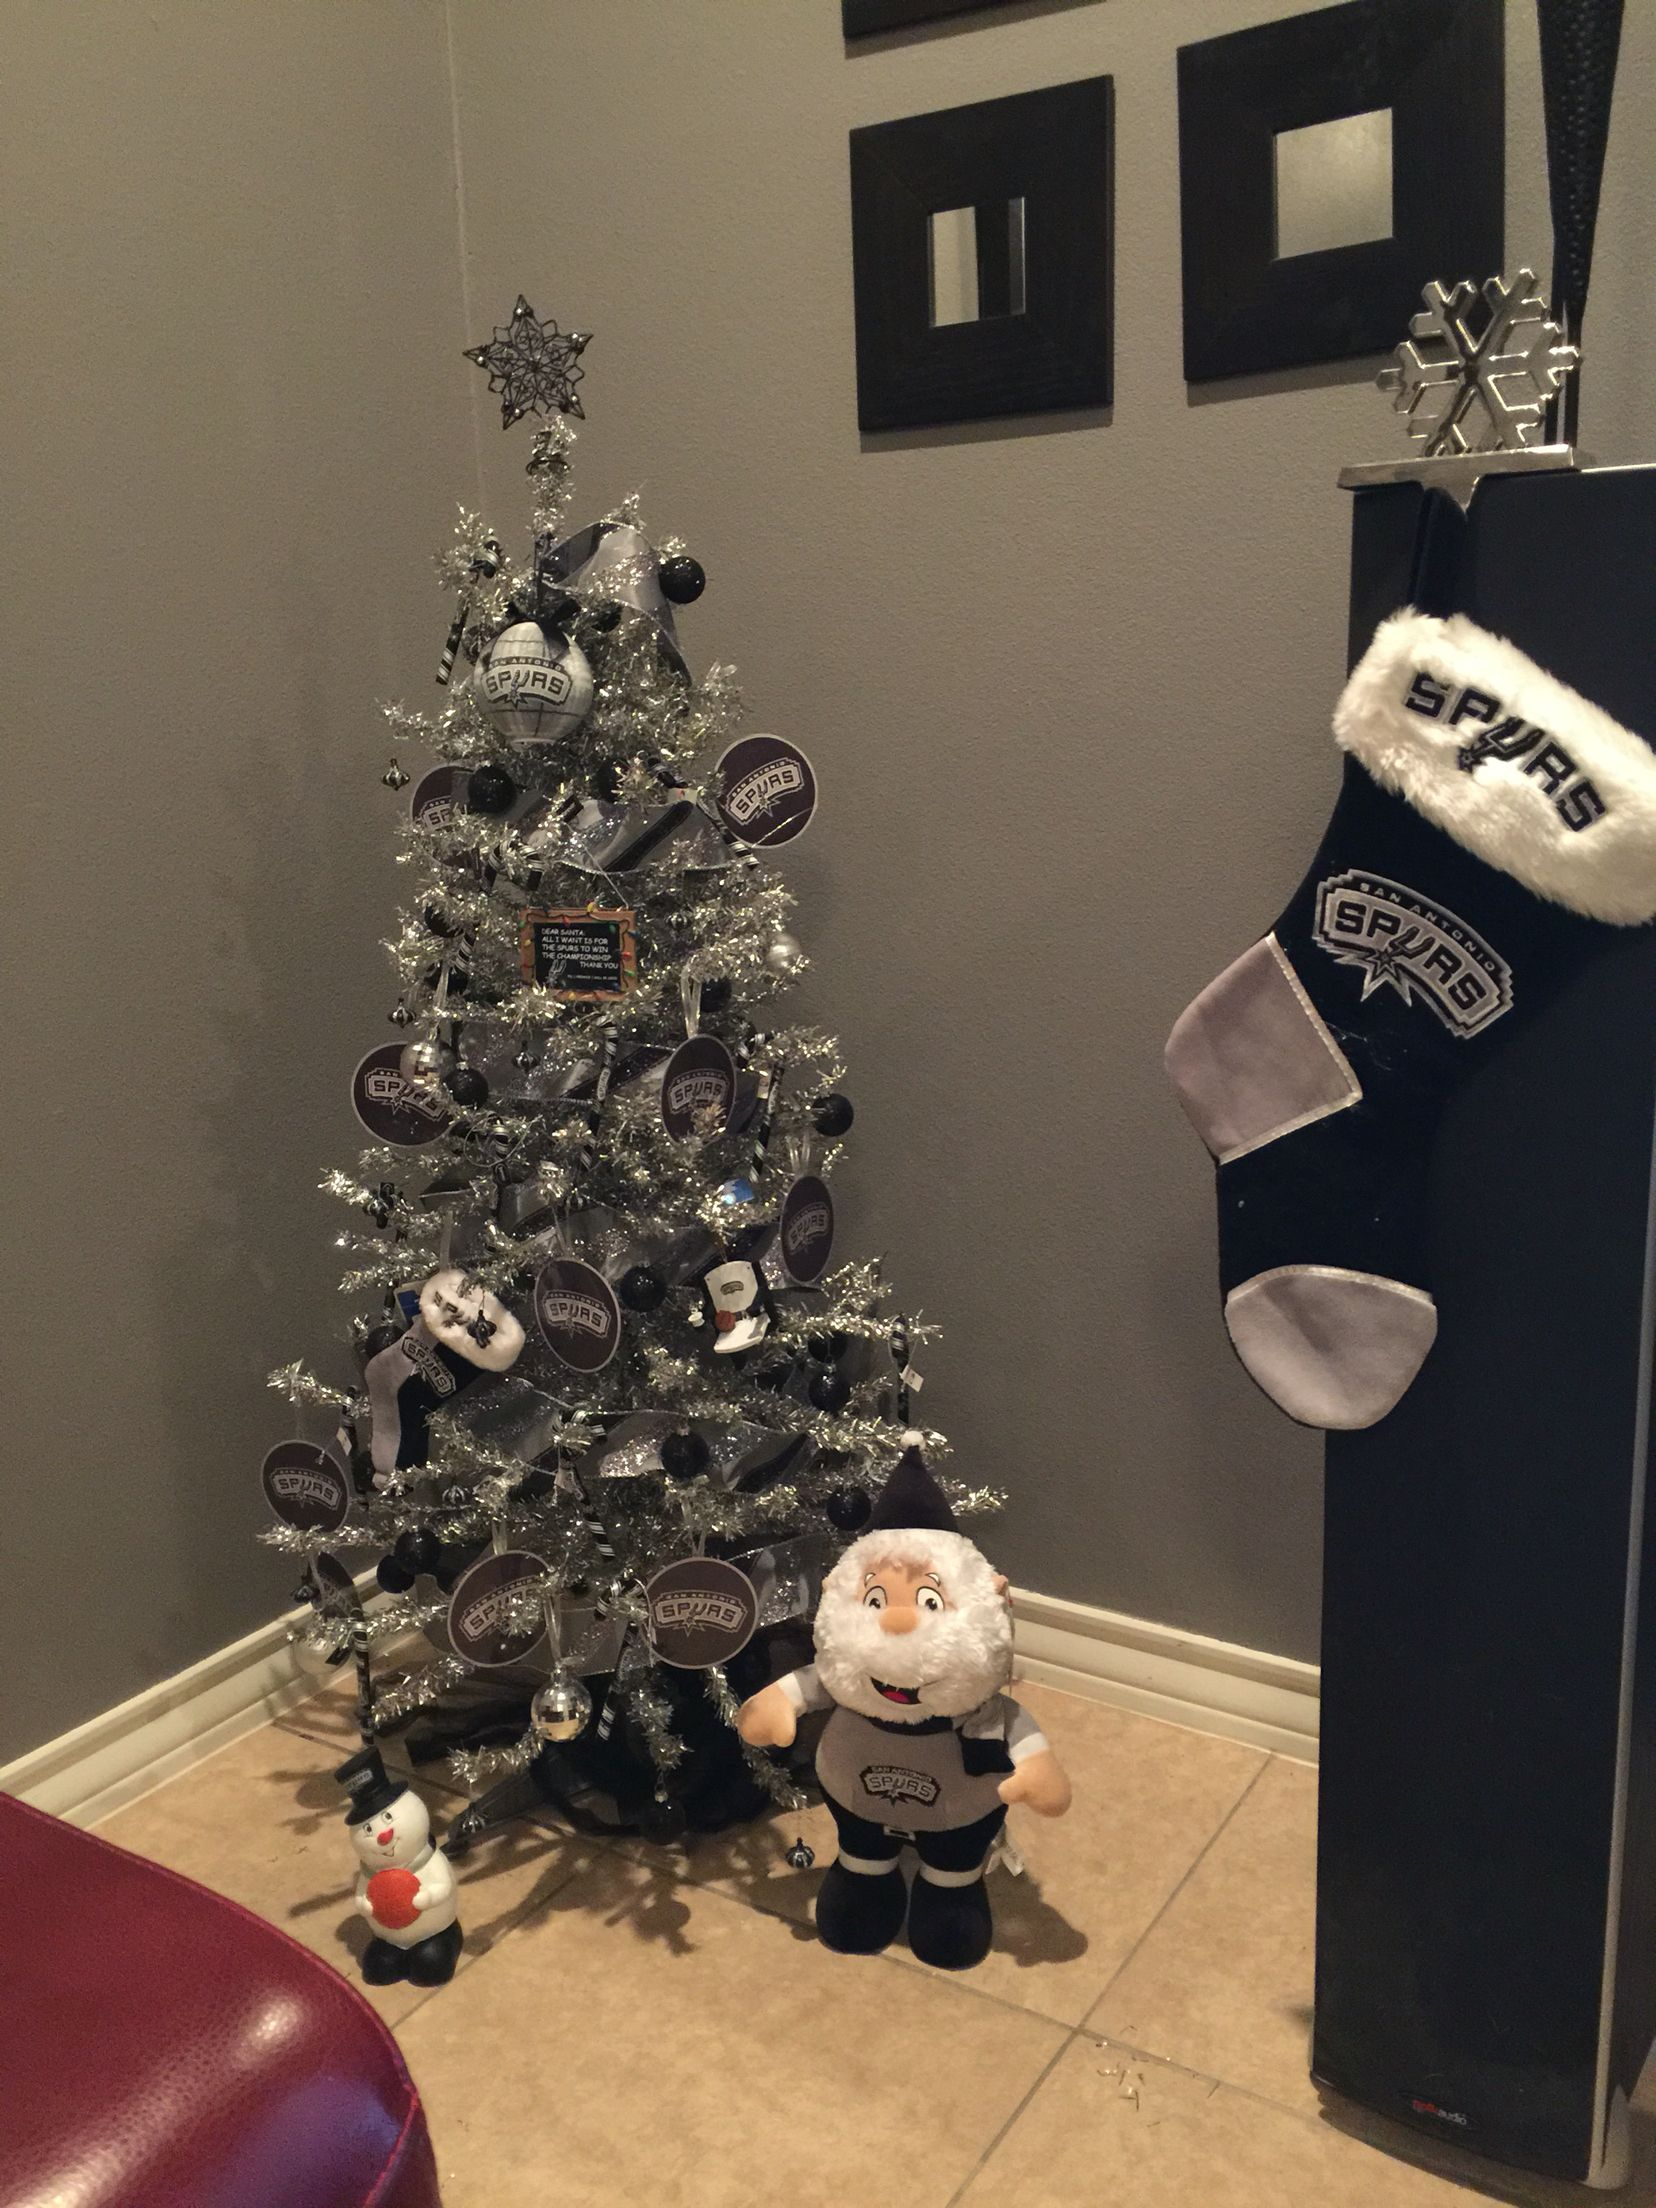 Spurs Christmas Tree  Spurs fans, Spurs, Christmas tree